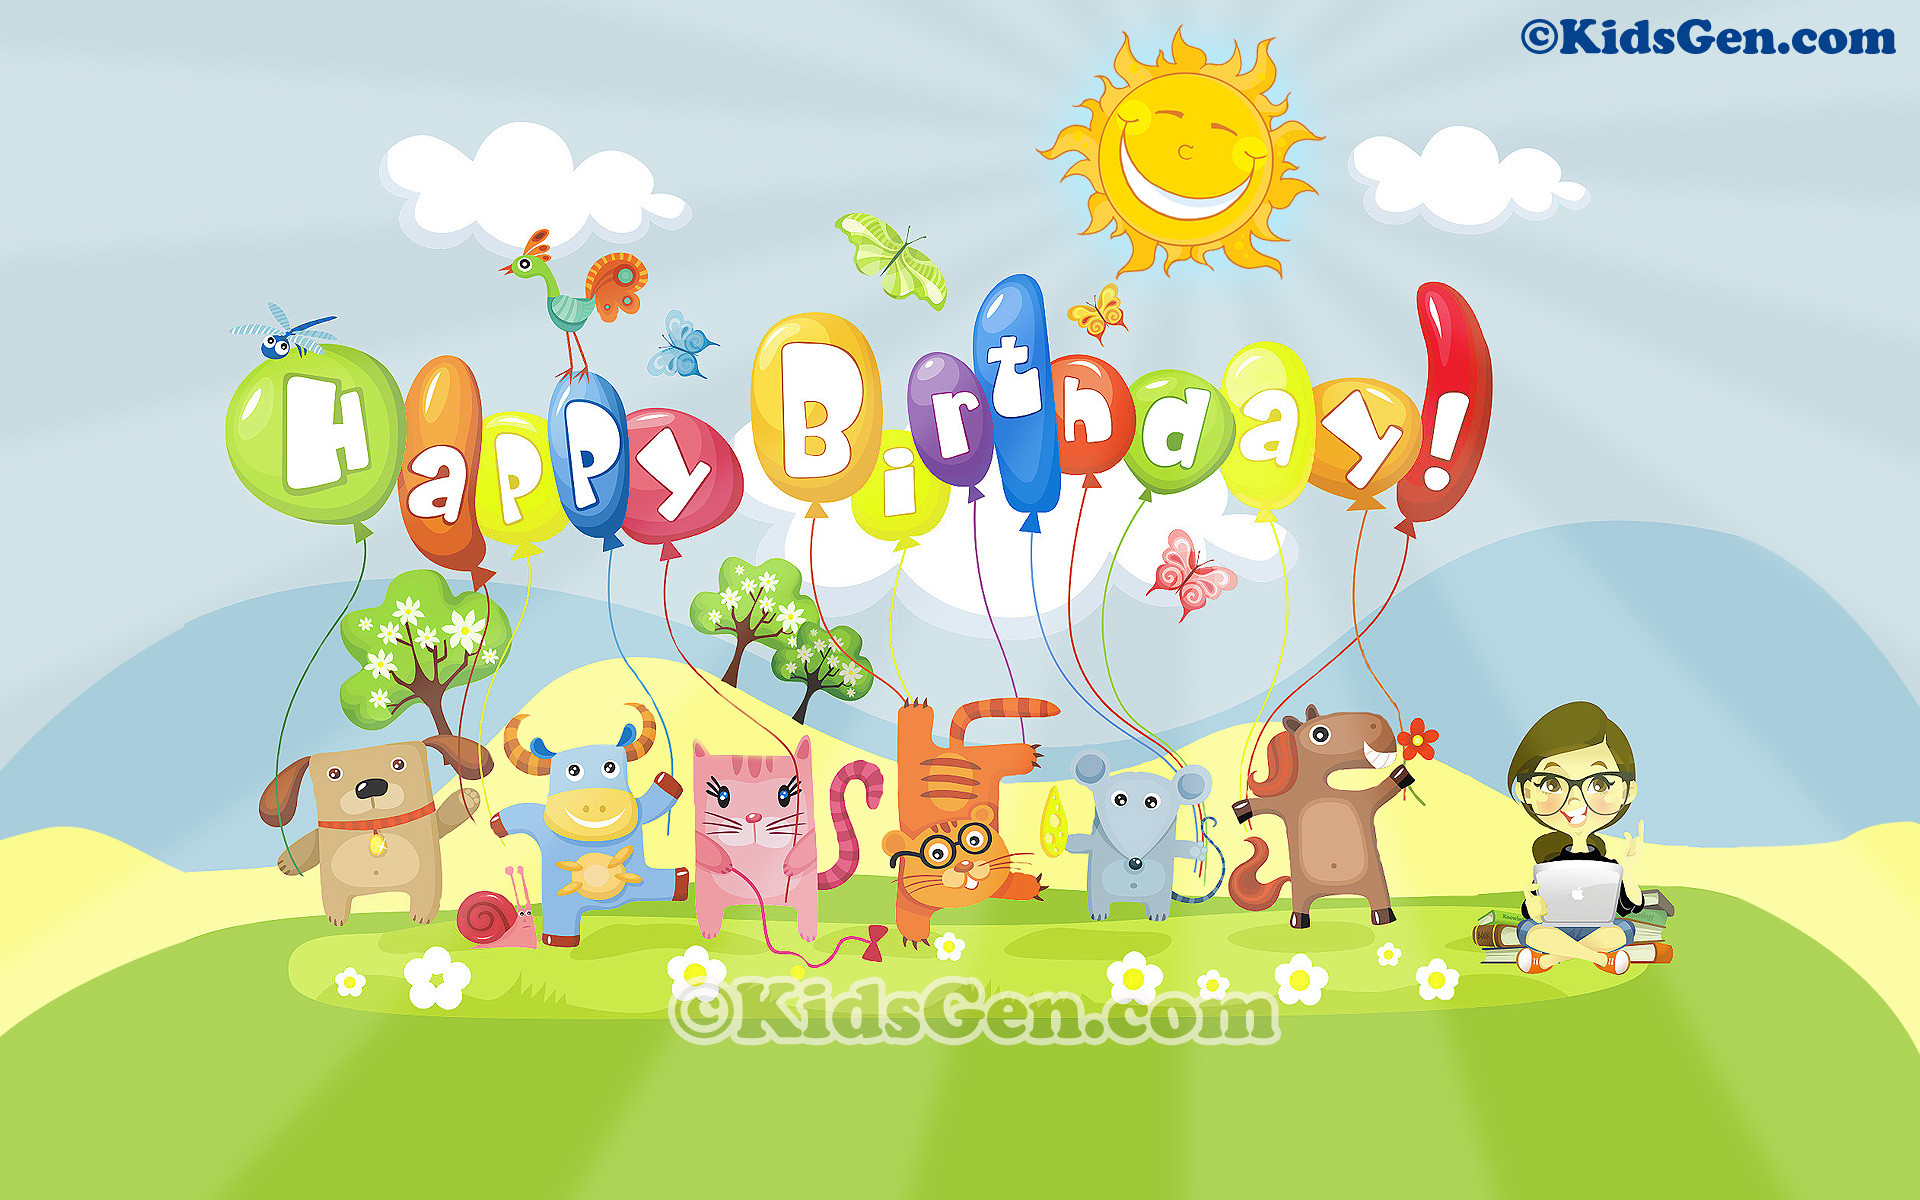 1920x1200 HD cartoon wallpaper featuring animals wishing Happy Birthday